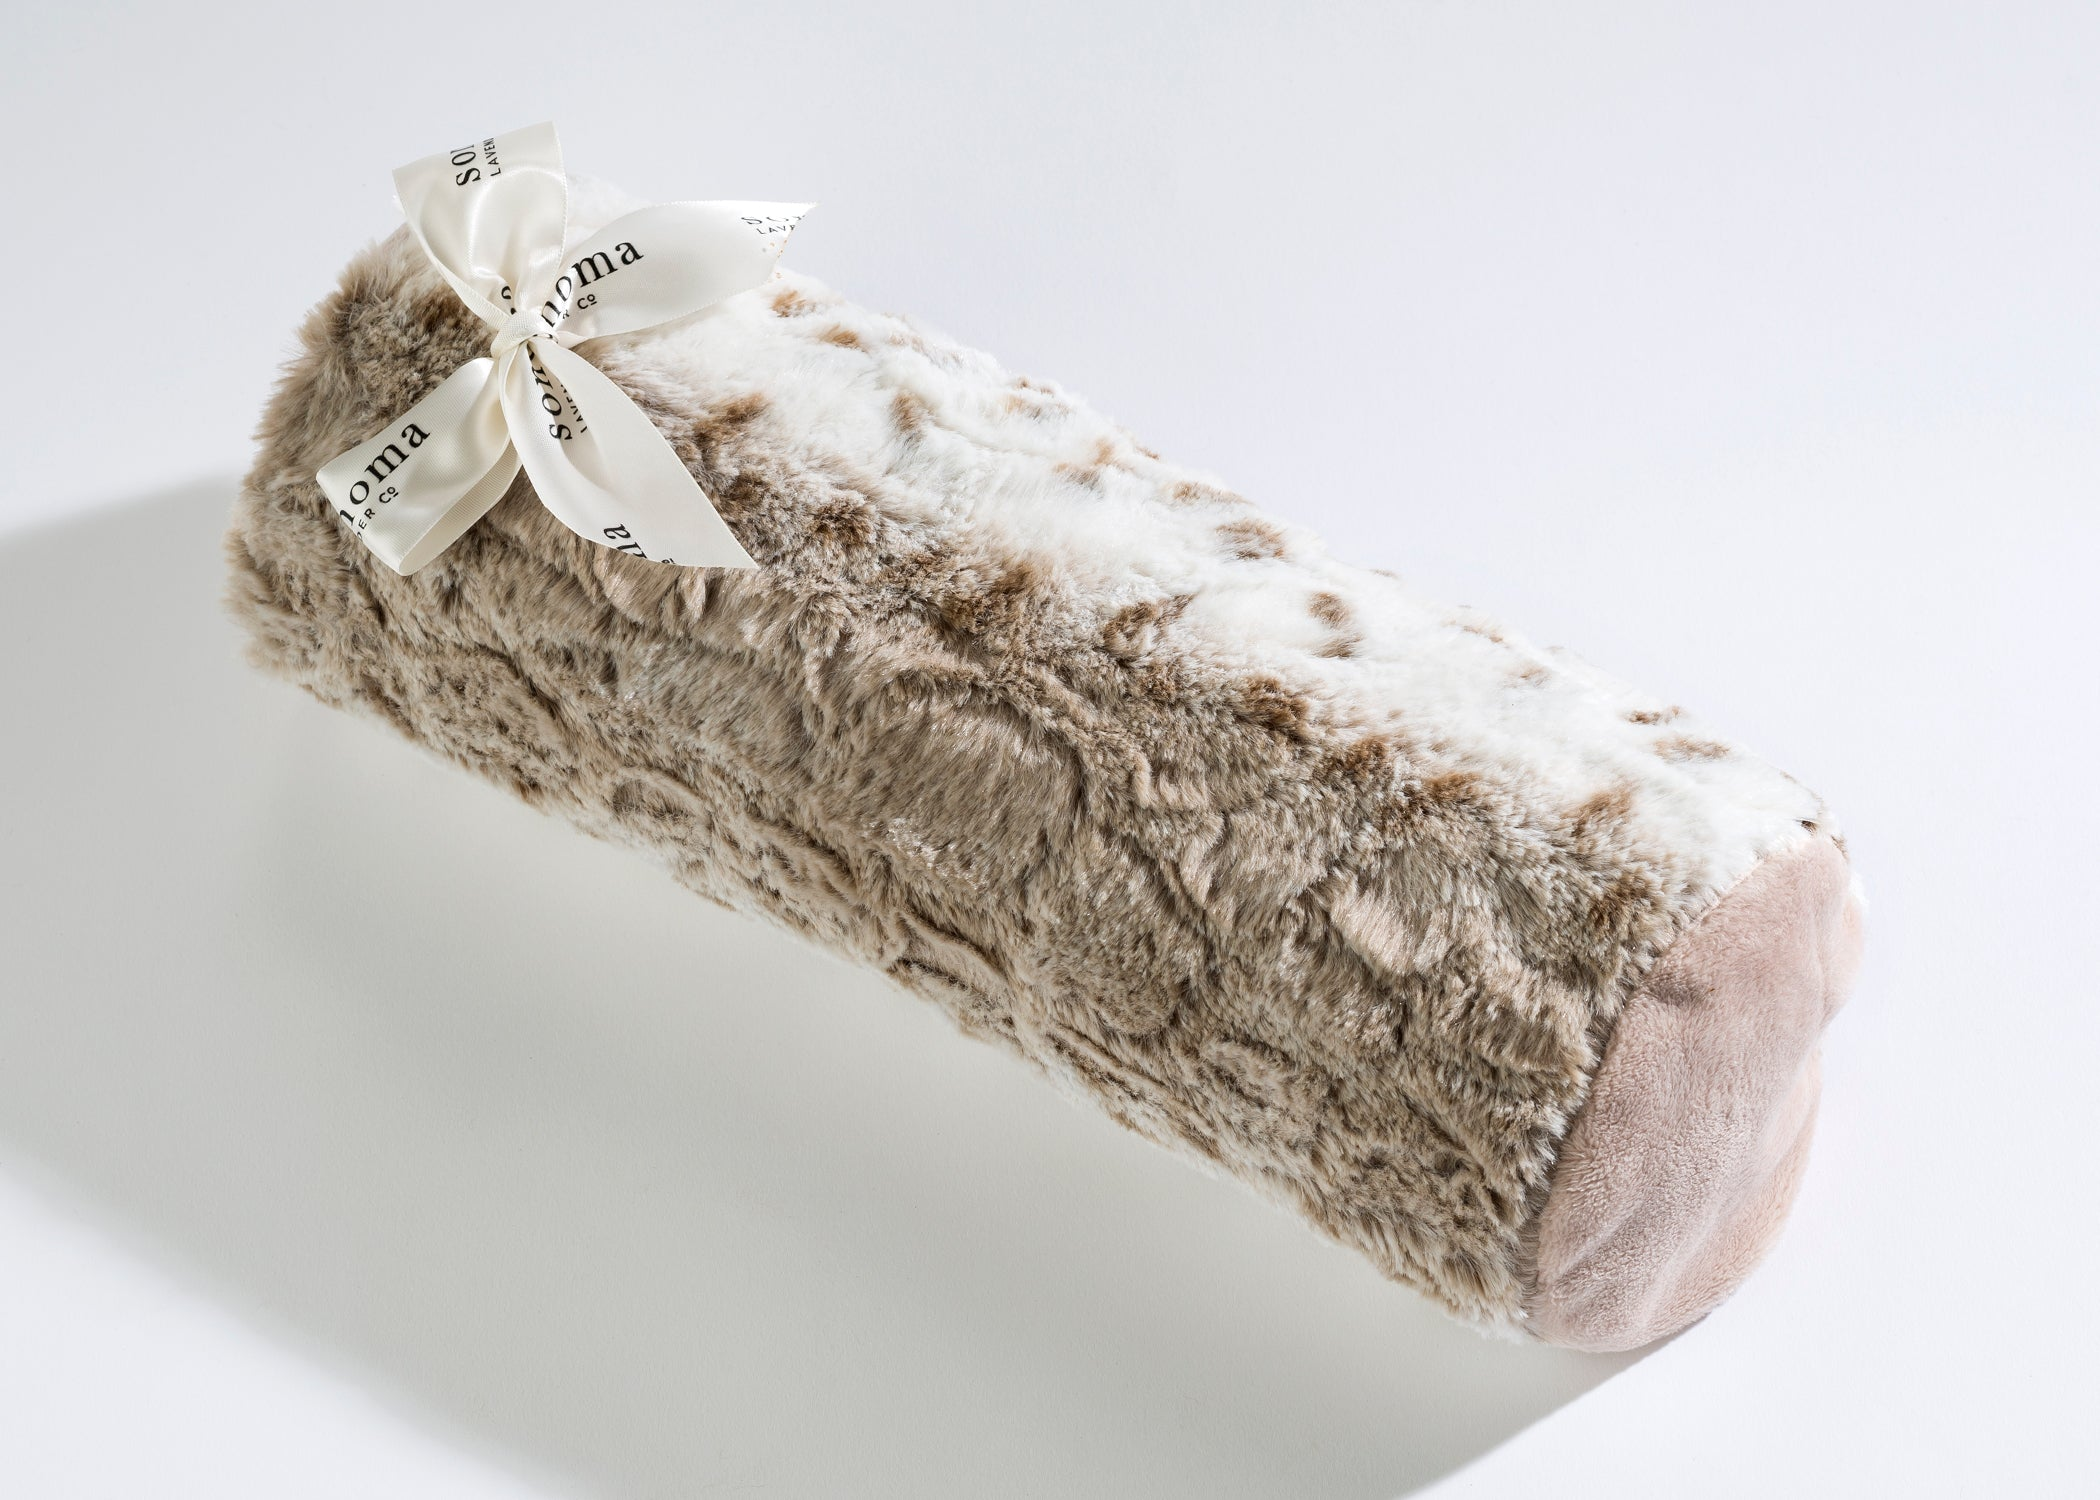 Lavender Spa Bolster Roll in Arctic Circle Faux Fur